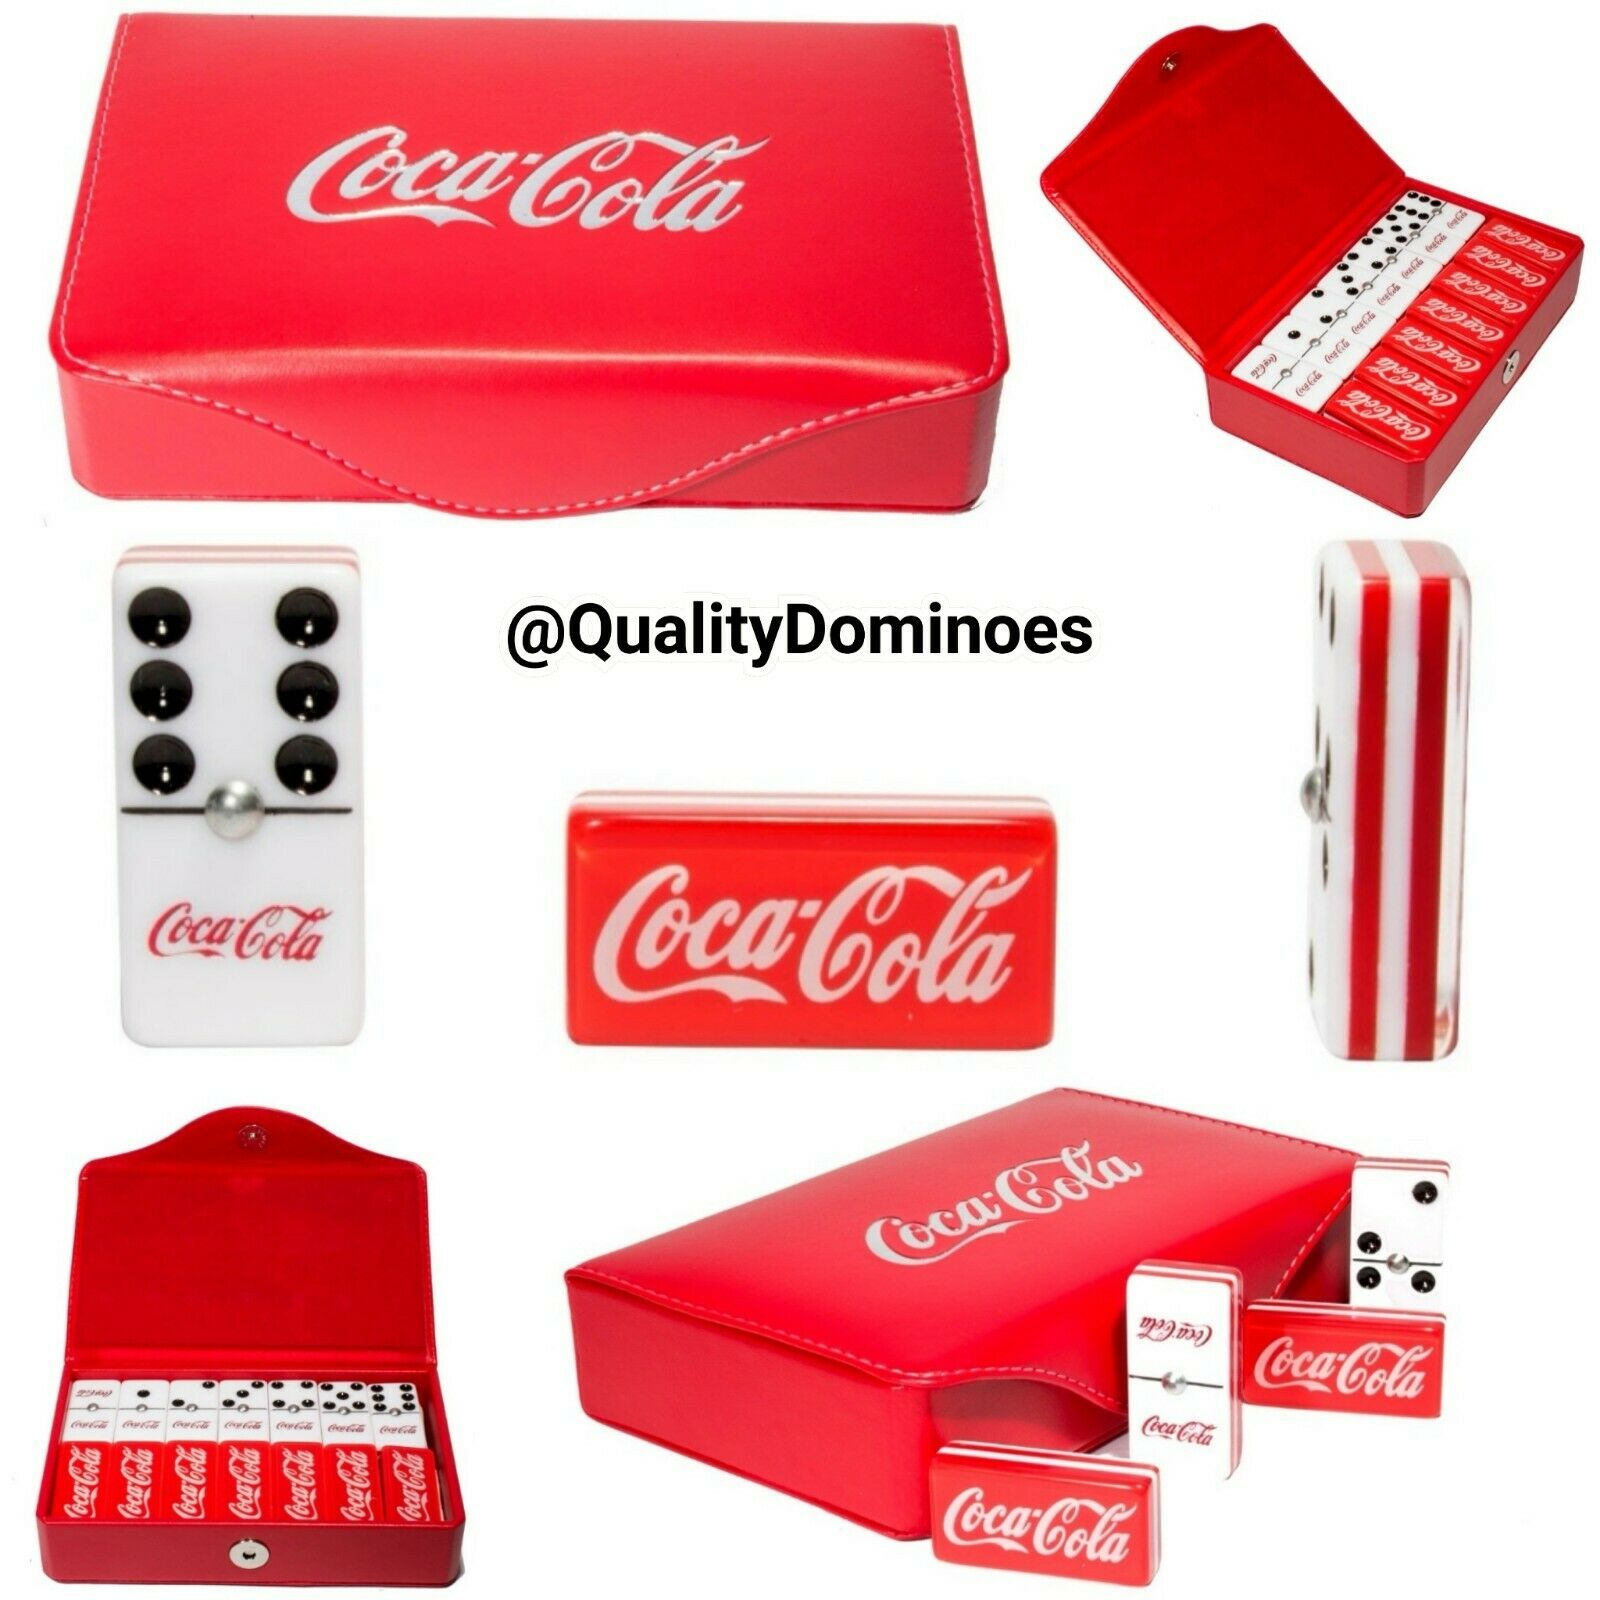 Coca Cola Domino Game Set Double 6 Jumbo Dimensione Dominoes Man Cave Hot Gift Coke